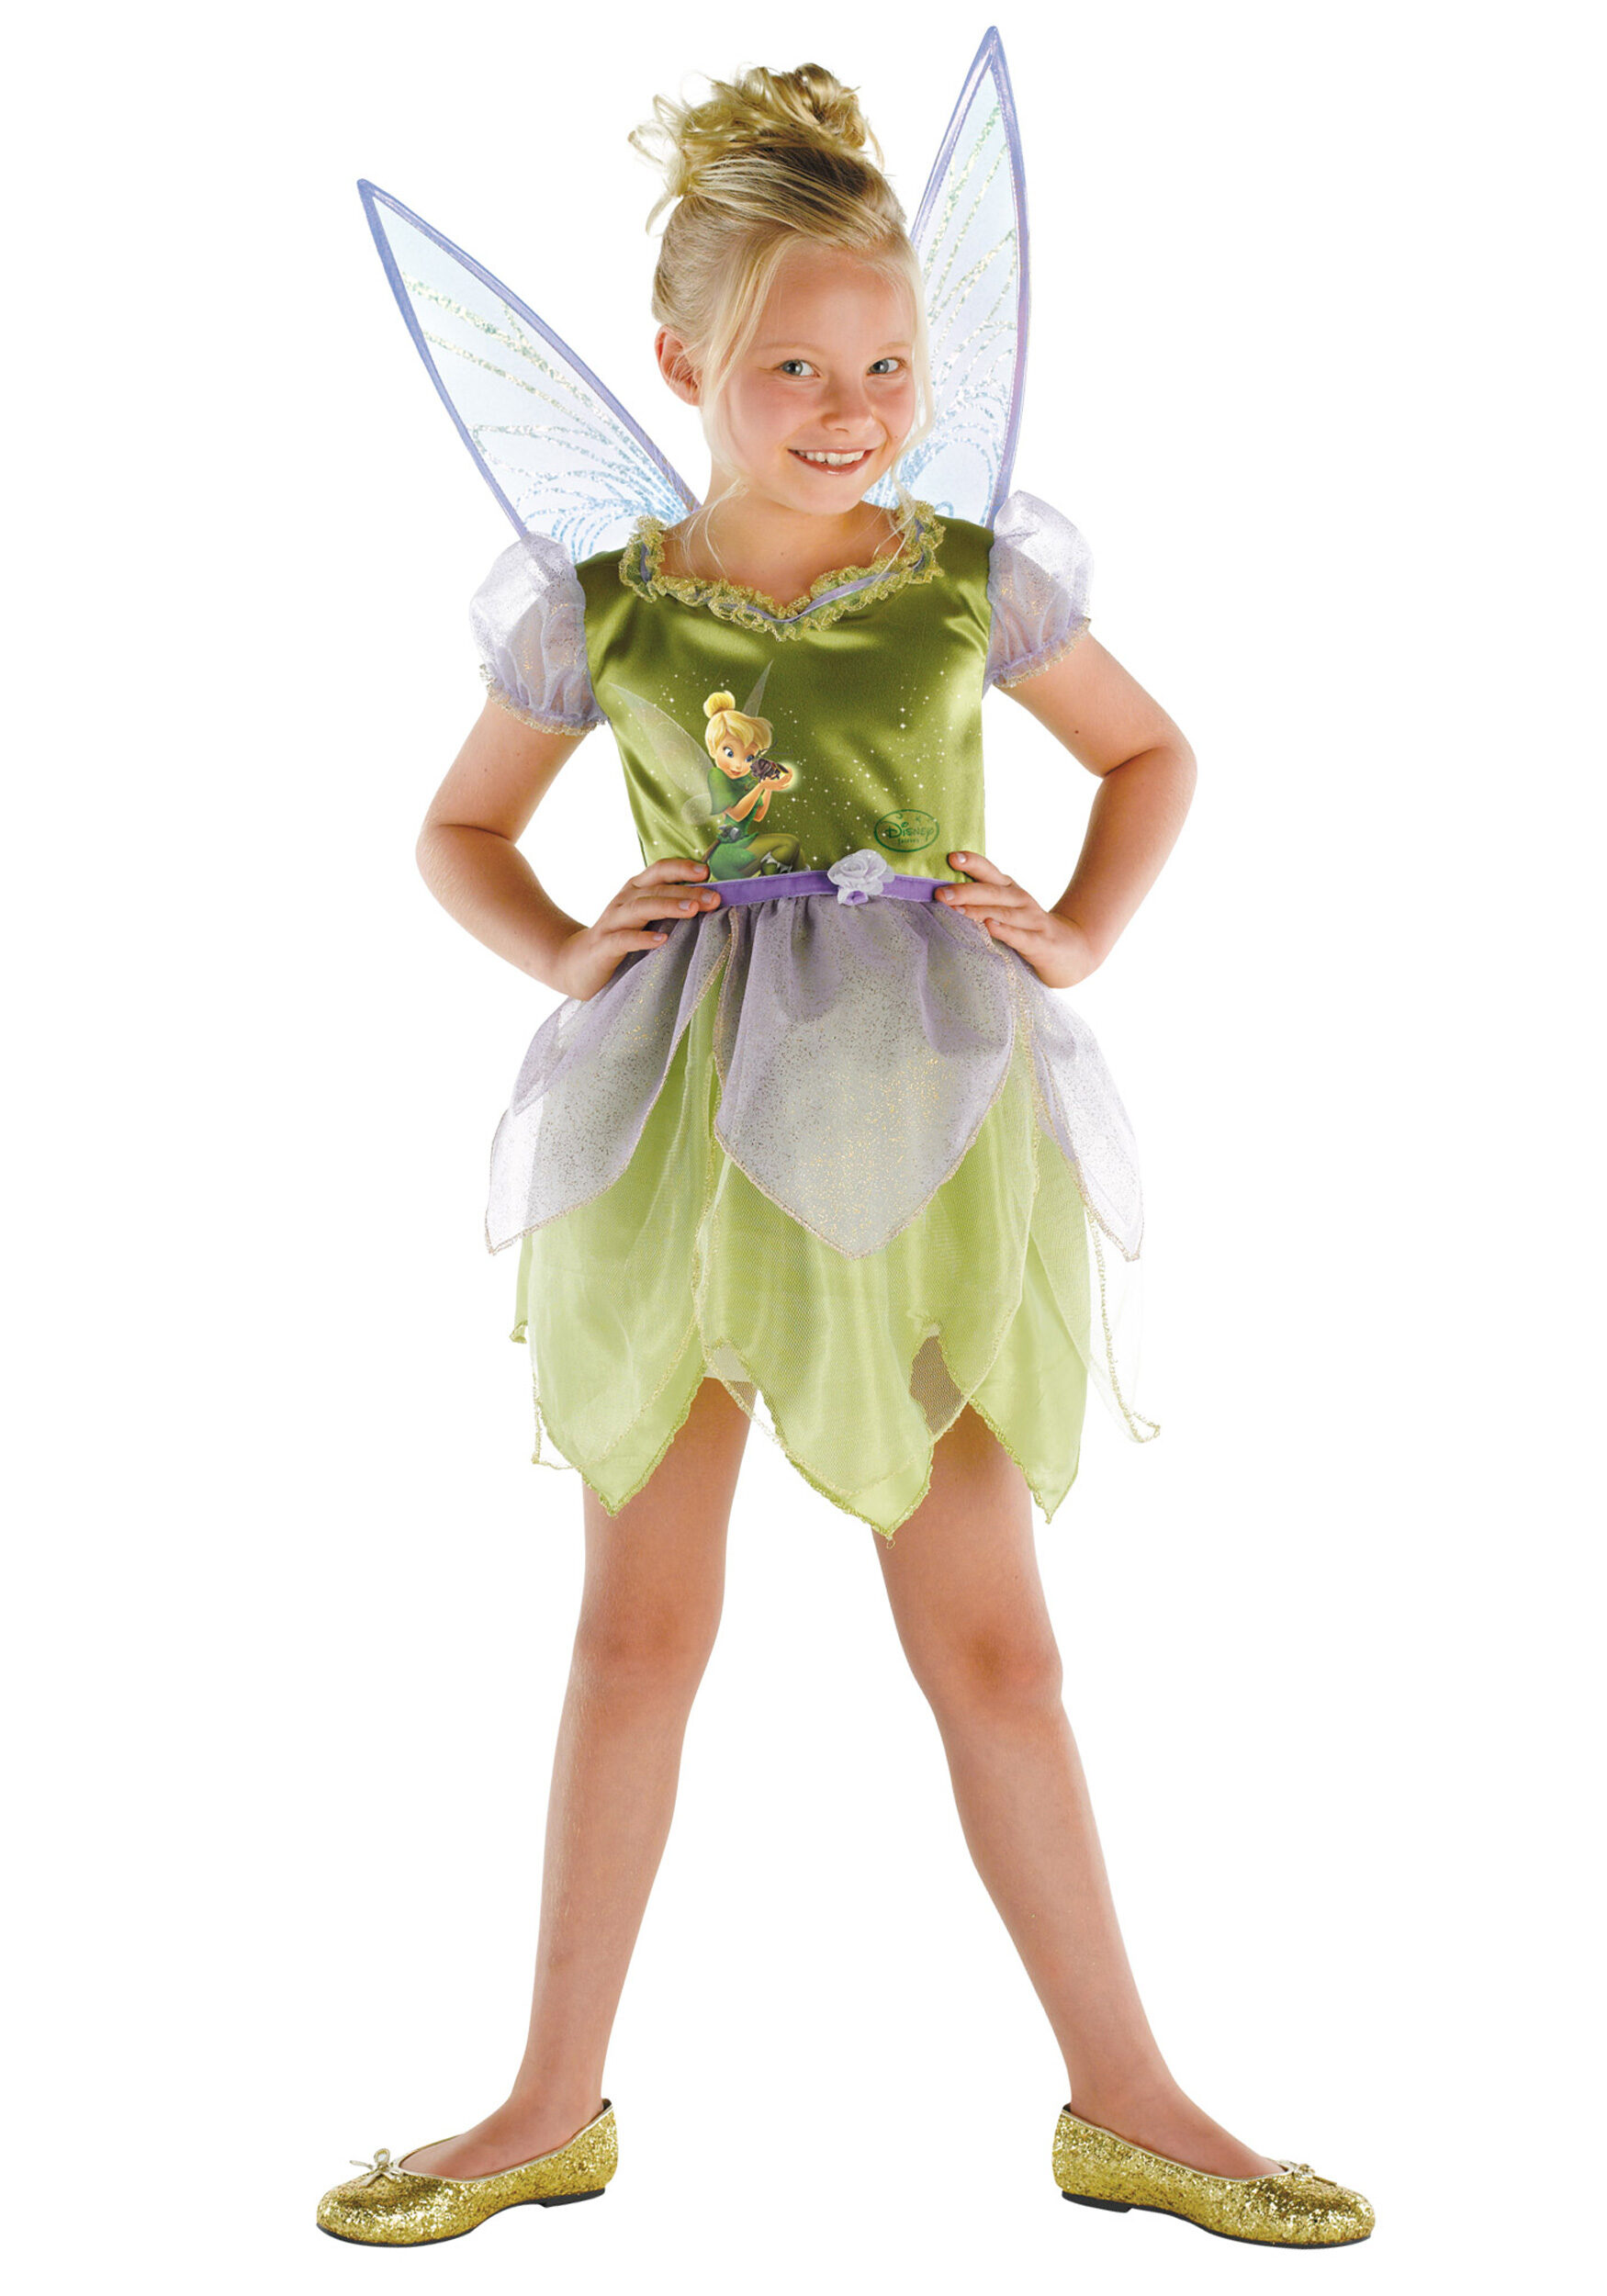 sc 1 st  Mr. Costumes & Girls Lost Treasure Disney Tinkerbell Costume - Mr. Costumes